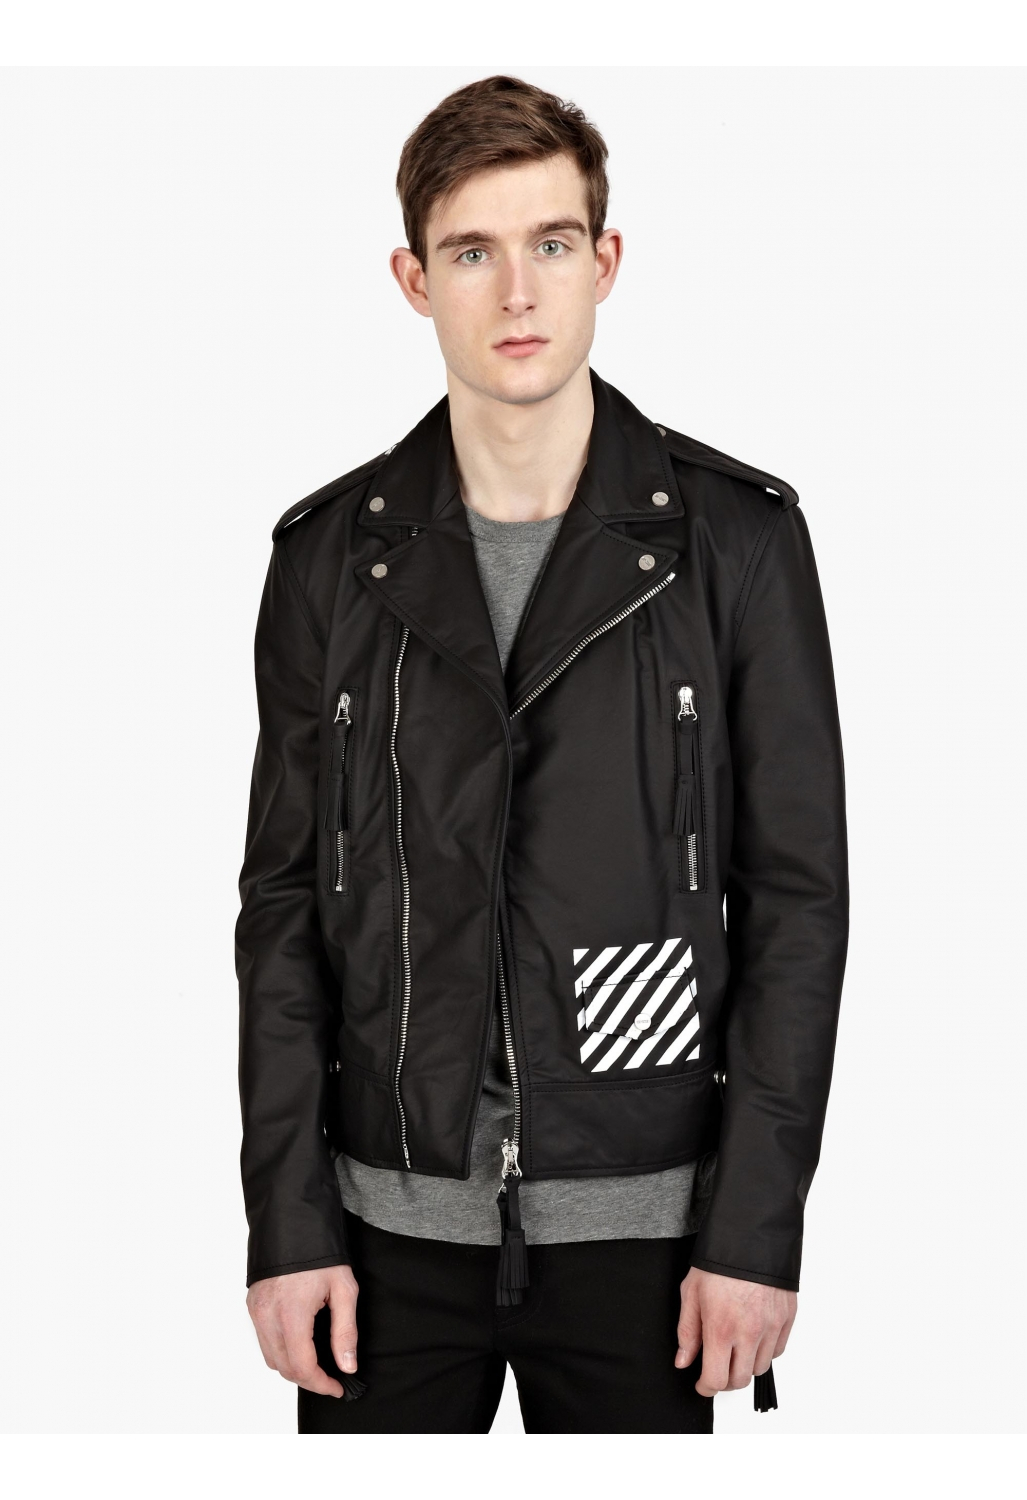 off white c o virgil abloh men s printed leather biker jacket in black for men lyst. Black Bedroom Furniture Sets. Home Design Ideas